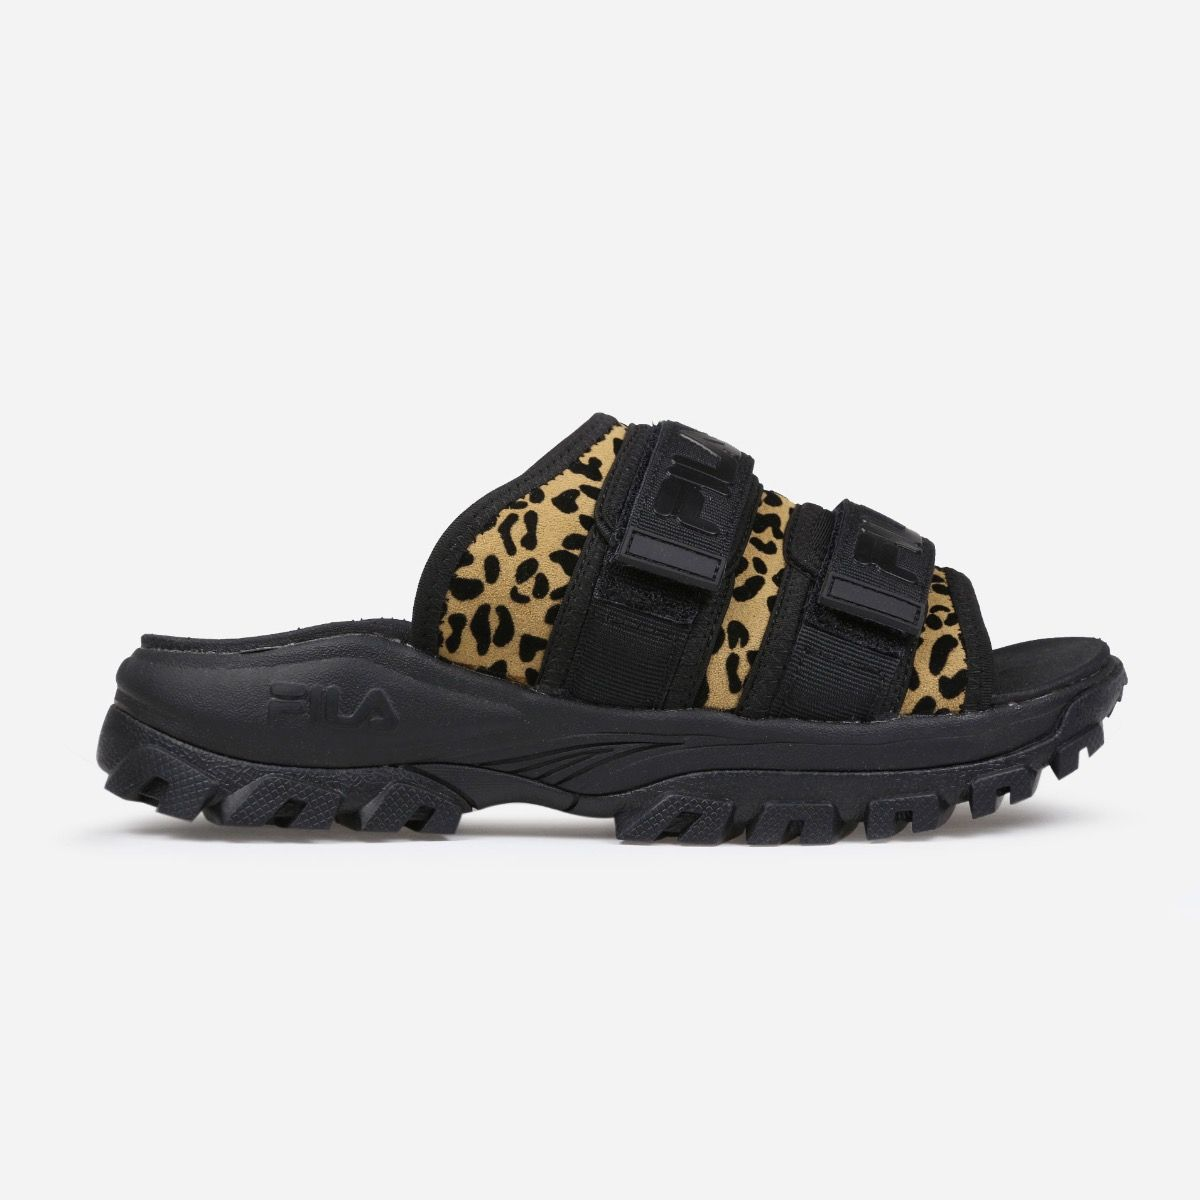 Women's Outdoor Animal Print Sandal